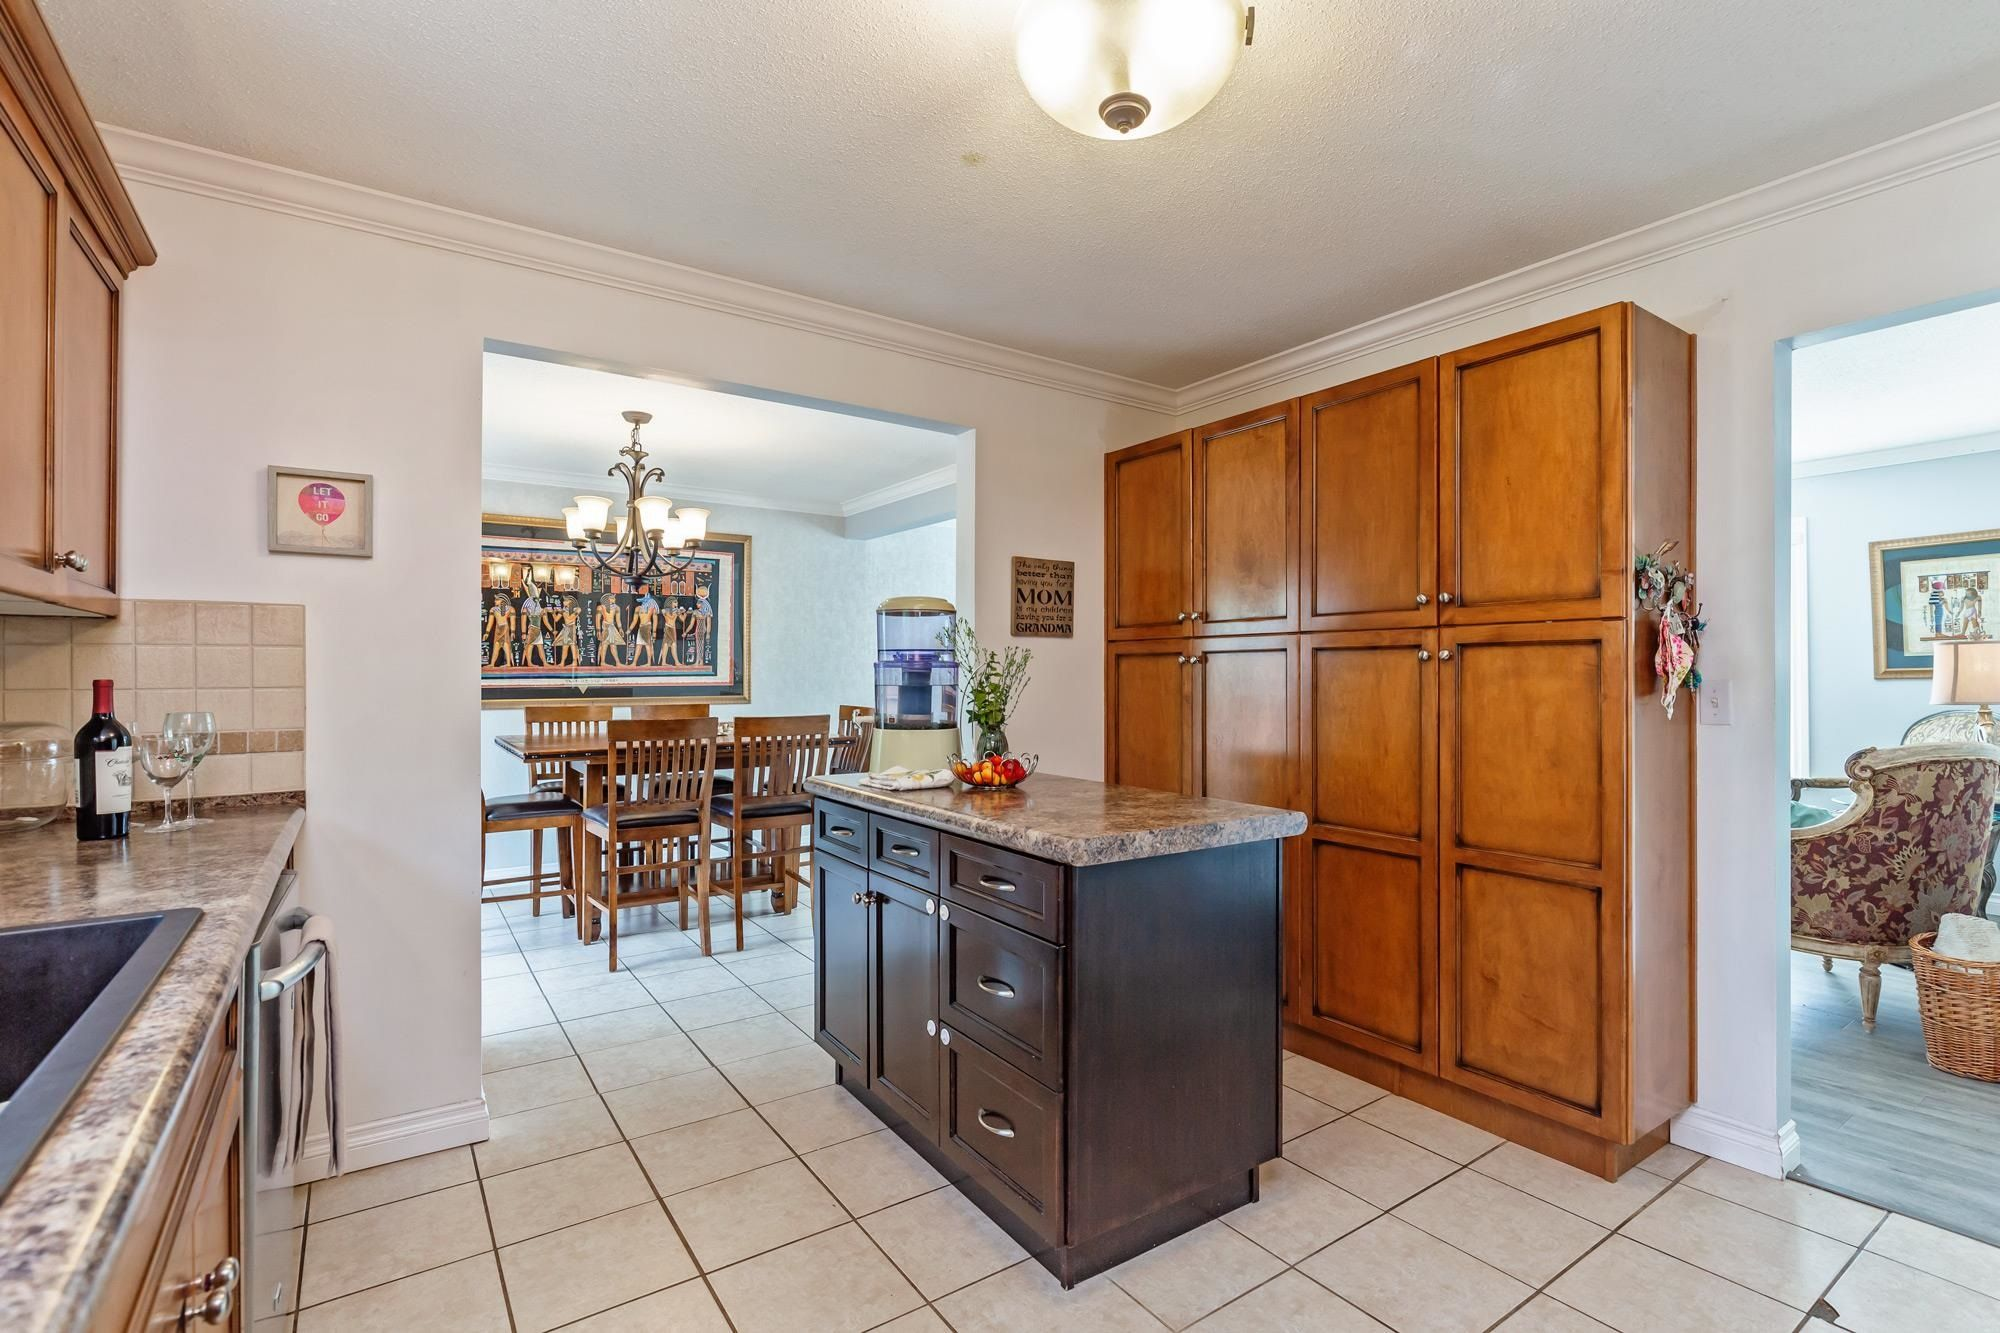 Photo 10: Photos: 32319 ATWATER Crescent in Abbotsford: Abbotsford West House for sale : MLS®# R2609136